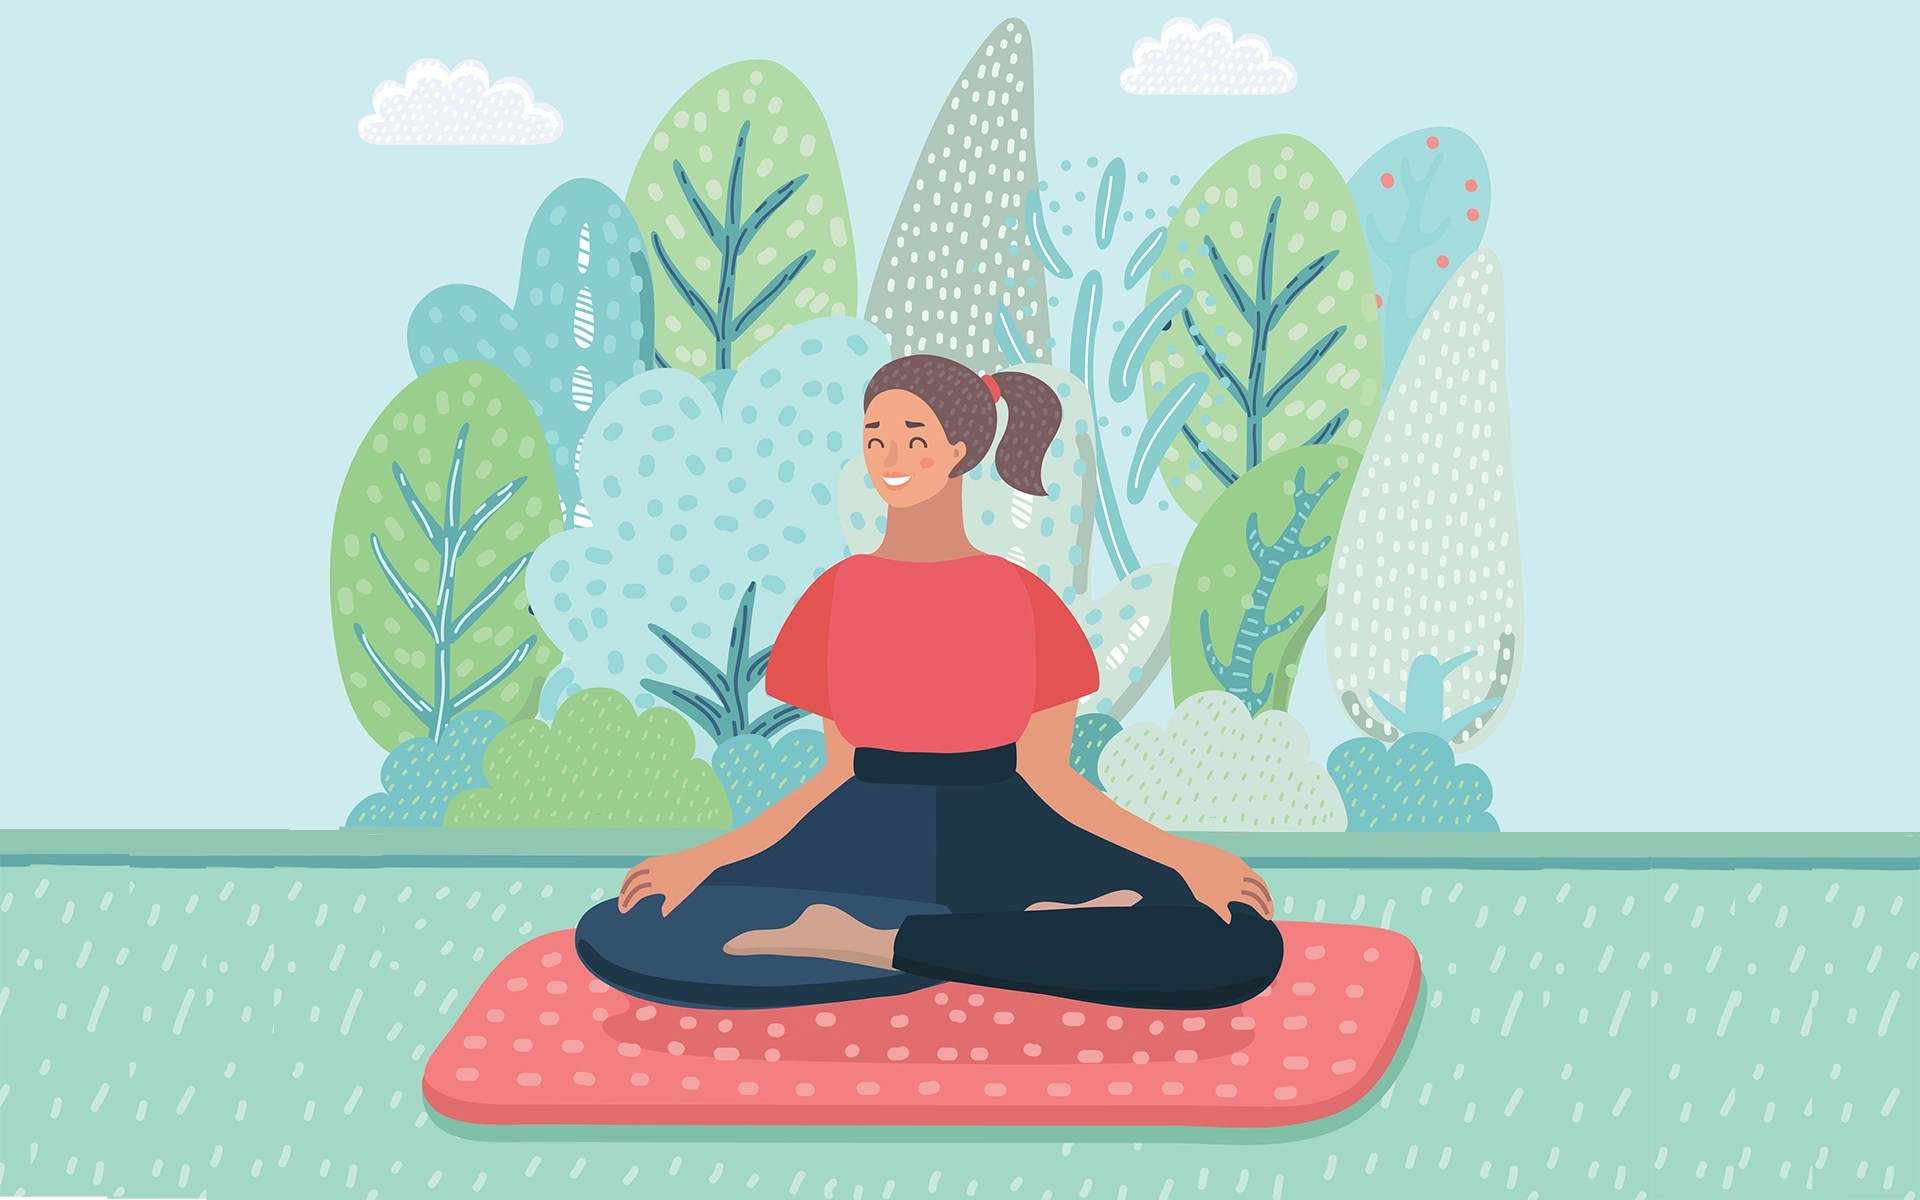 10-Minute Meditation to Ground, Breathe, Soothe - Woman was meditating in morning and rays of light on landscape